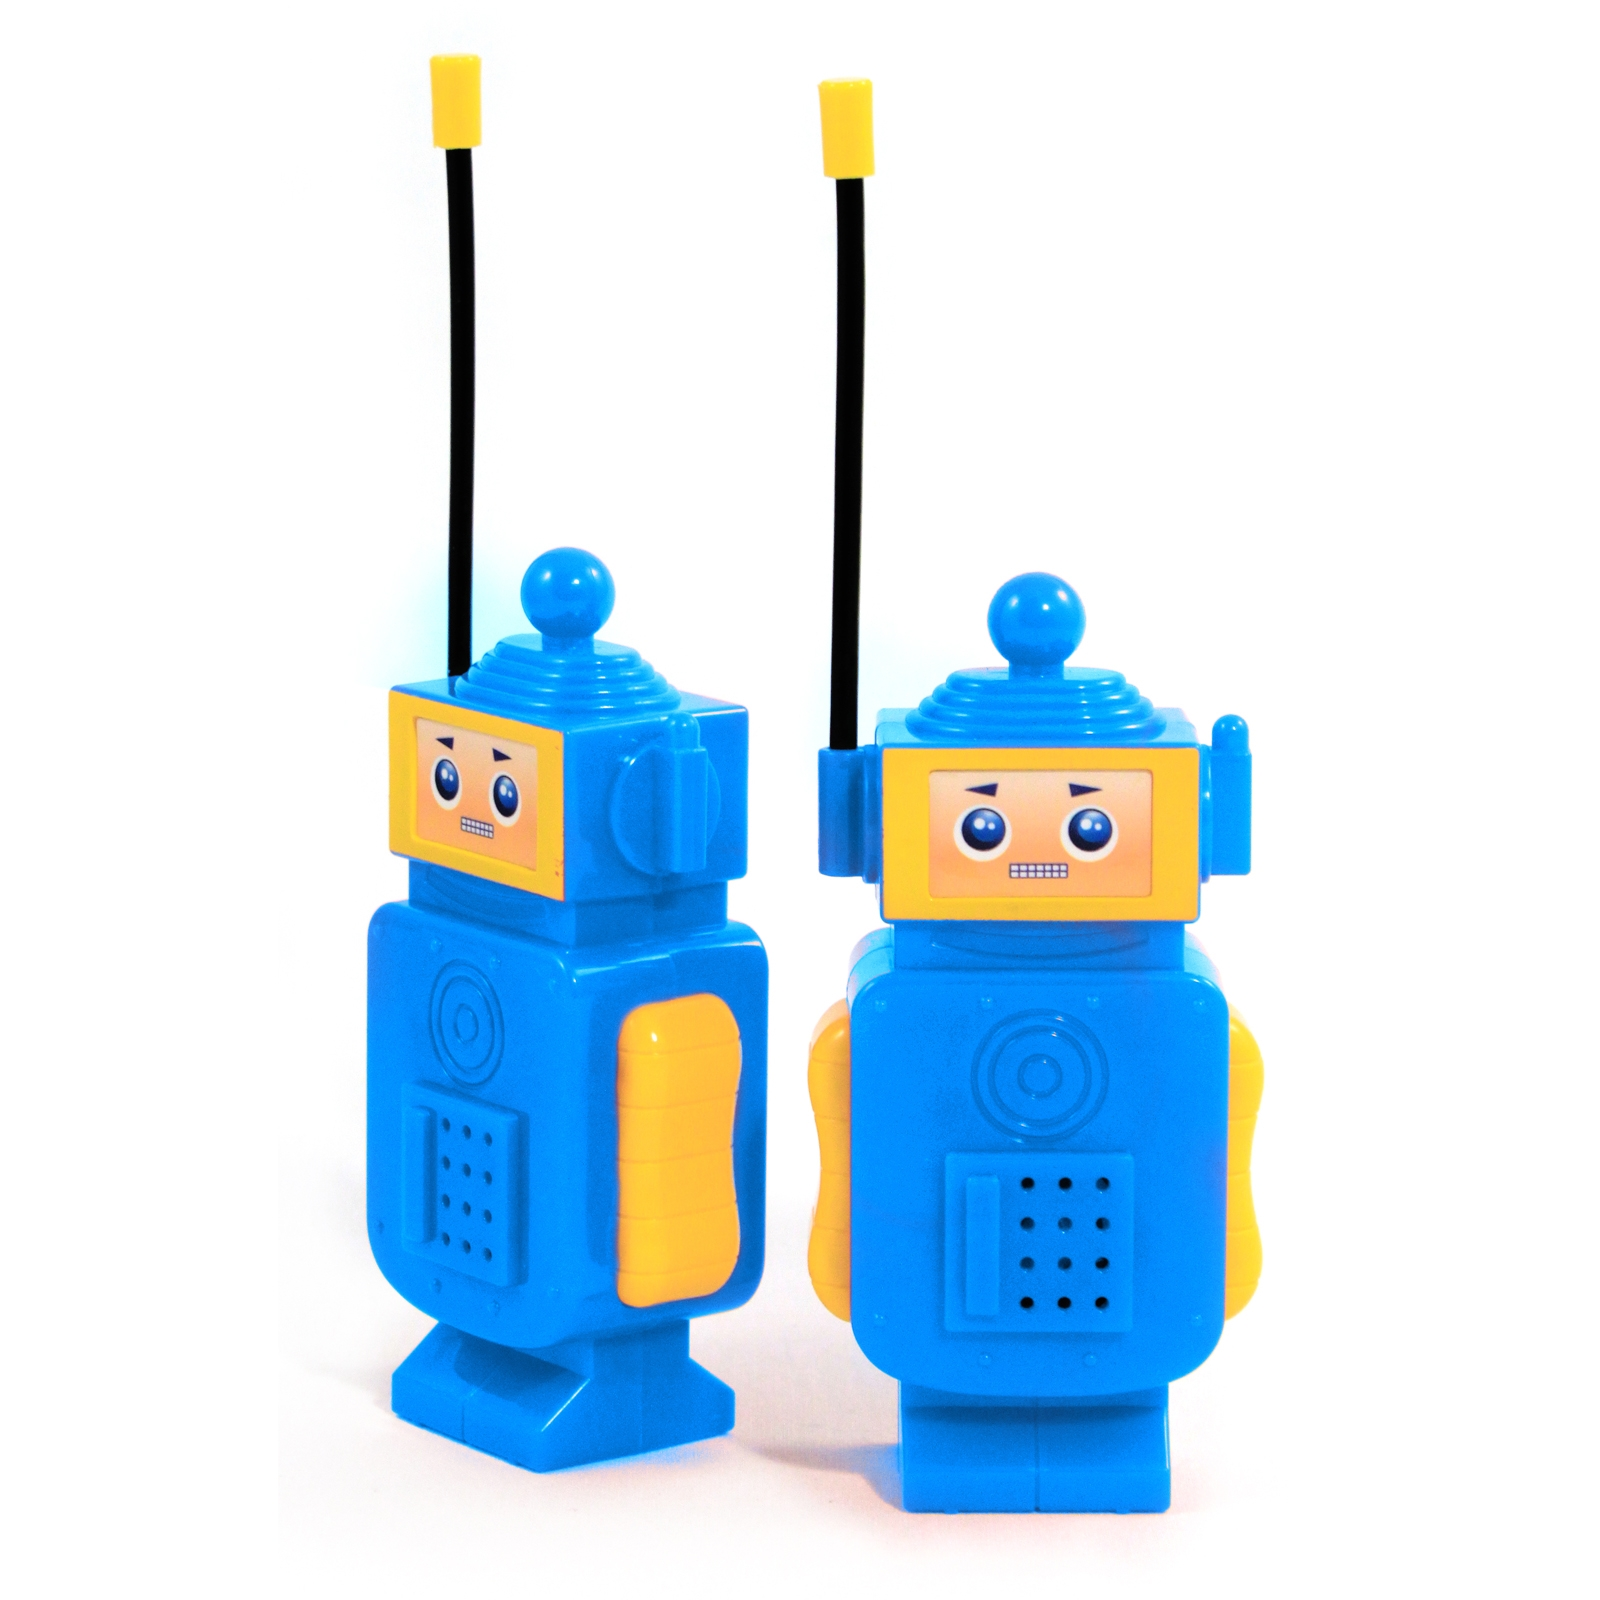 Robot Kids Walkie Talkies Two-Way Radio Set - LIght Blue